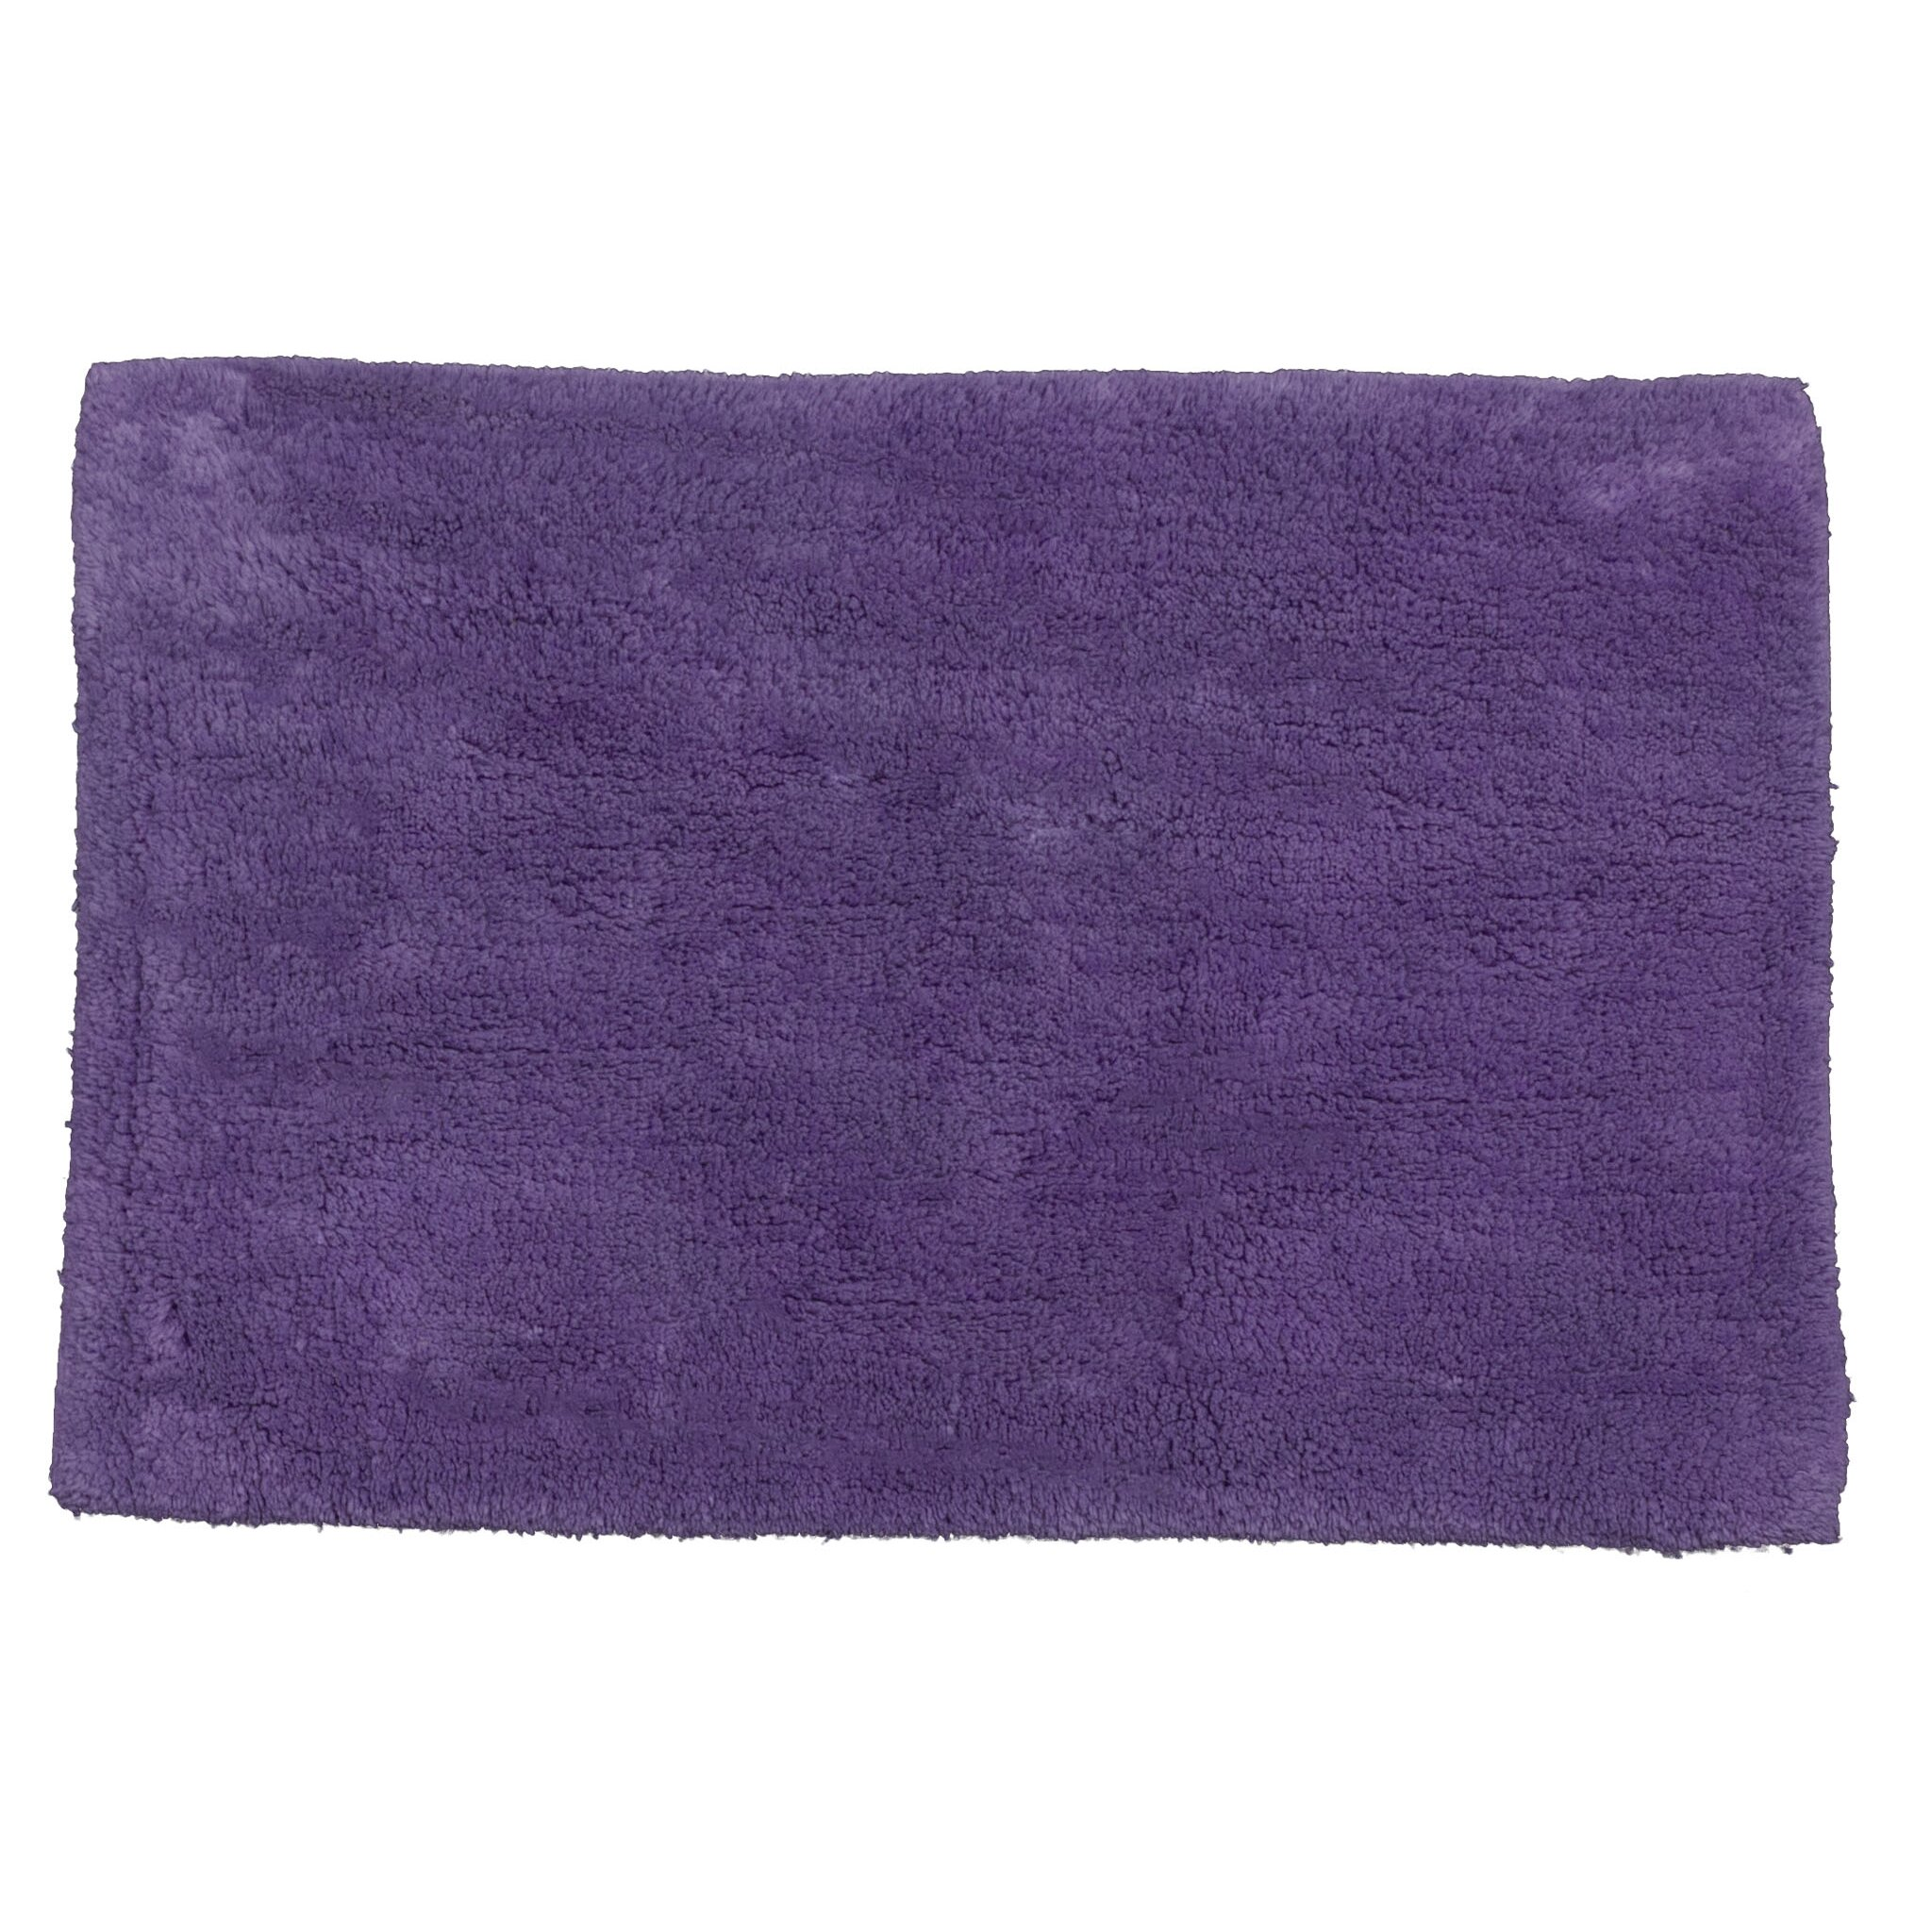 Janey lynn 39 s designs inc giggly grape area rug reviews - Grape design kitchen rugs ...